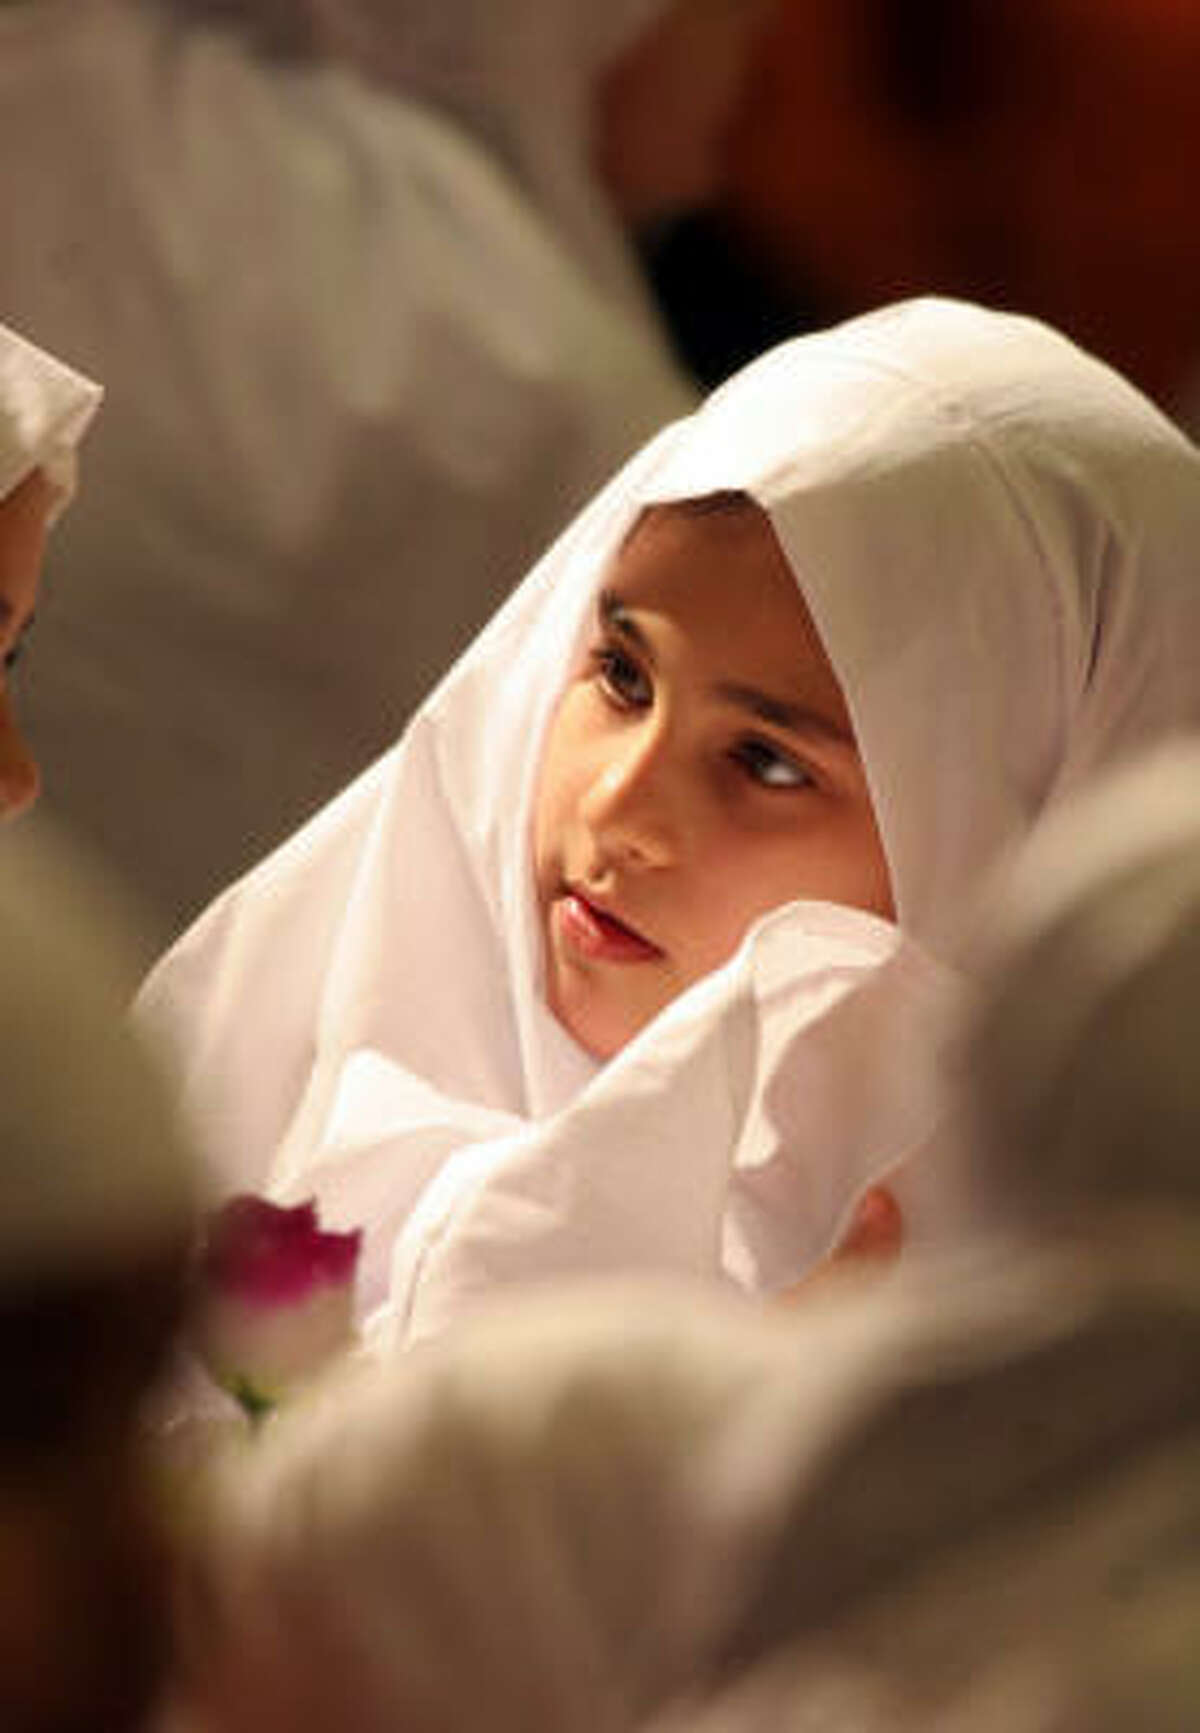 A 9-year-old Shia girl in the holy city of Karbala, Iraq, takes part in a ceremony. Although religious differences exist between Sunnis and Shias, the animosity in Iraq, observers say, is rooted less in religion than in politics and history.